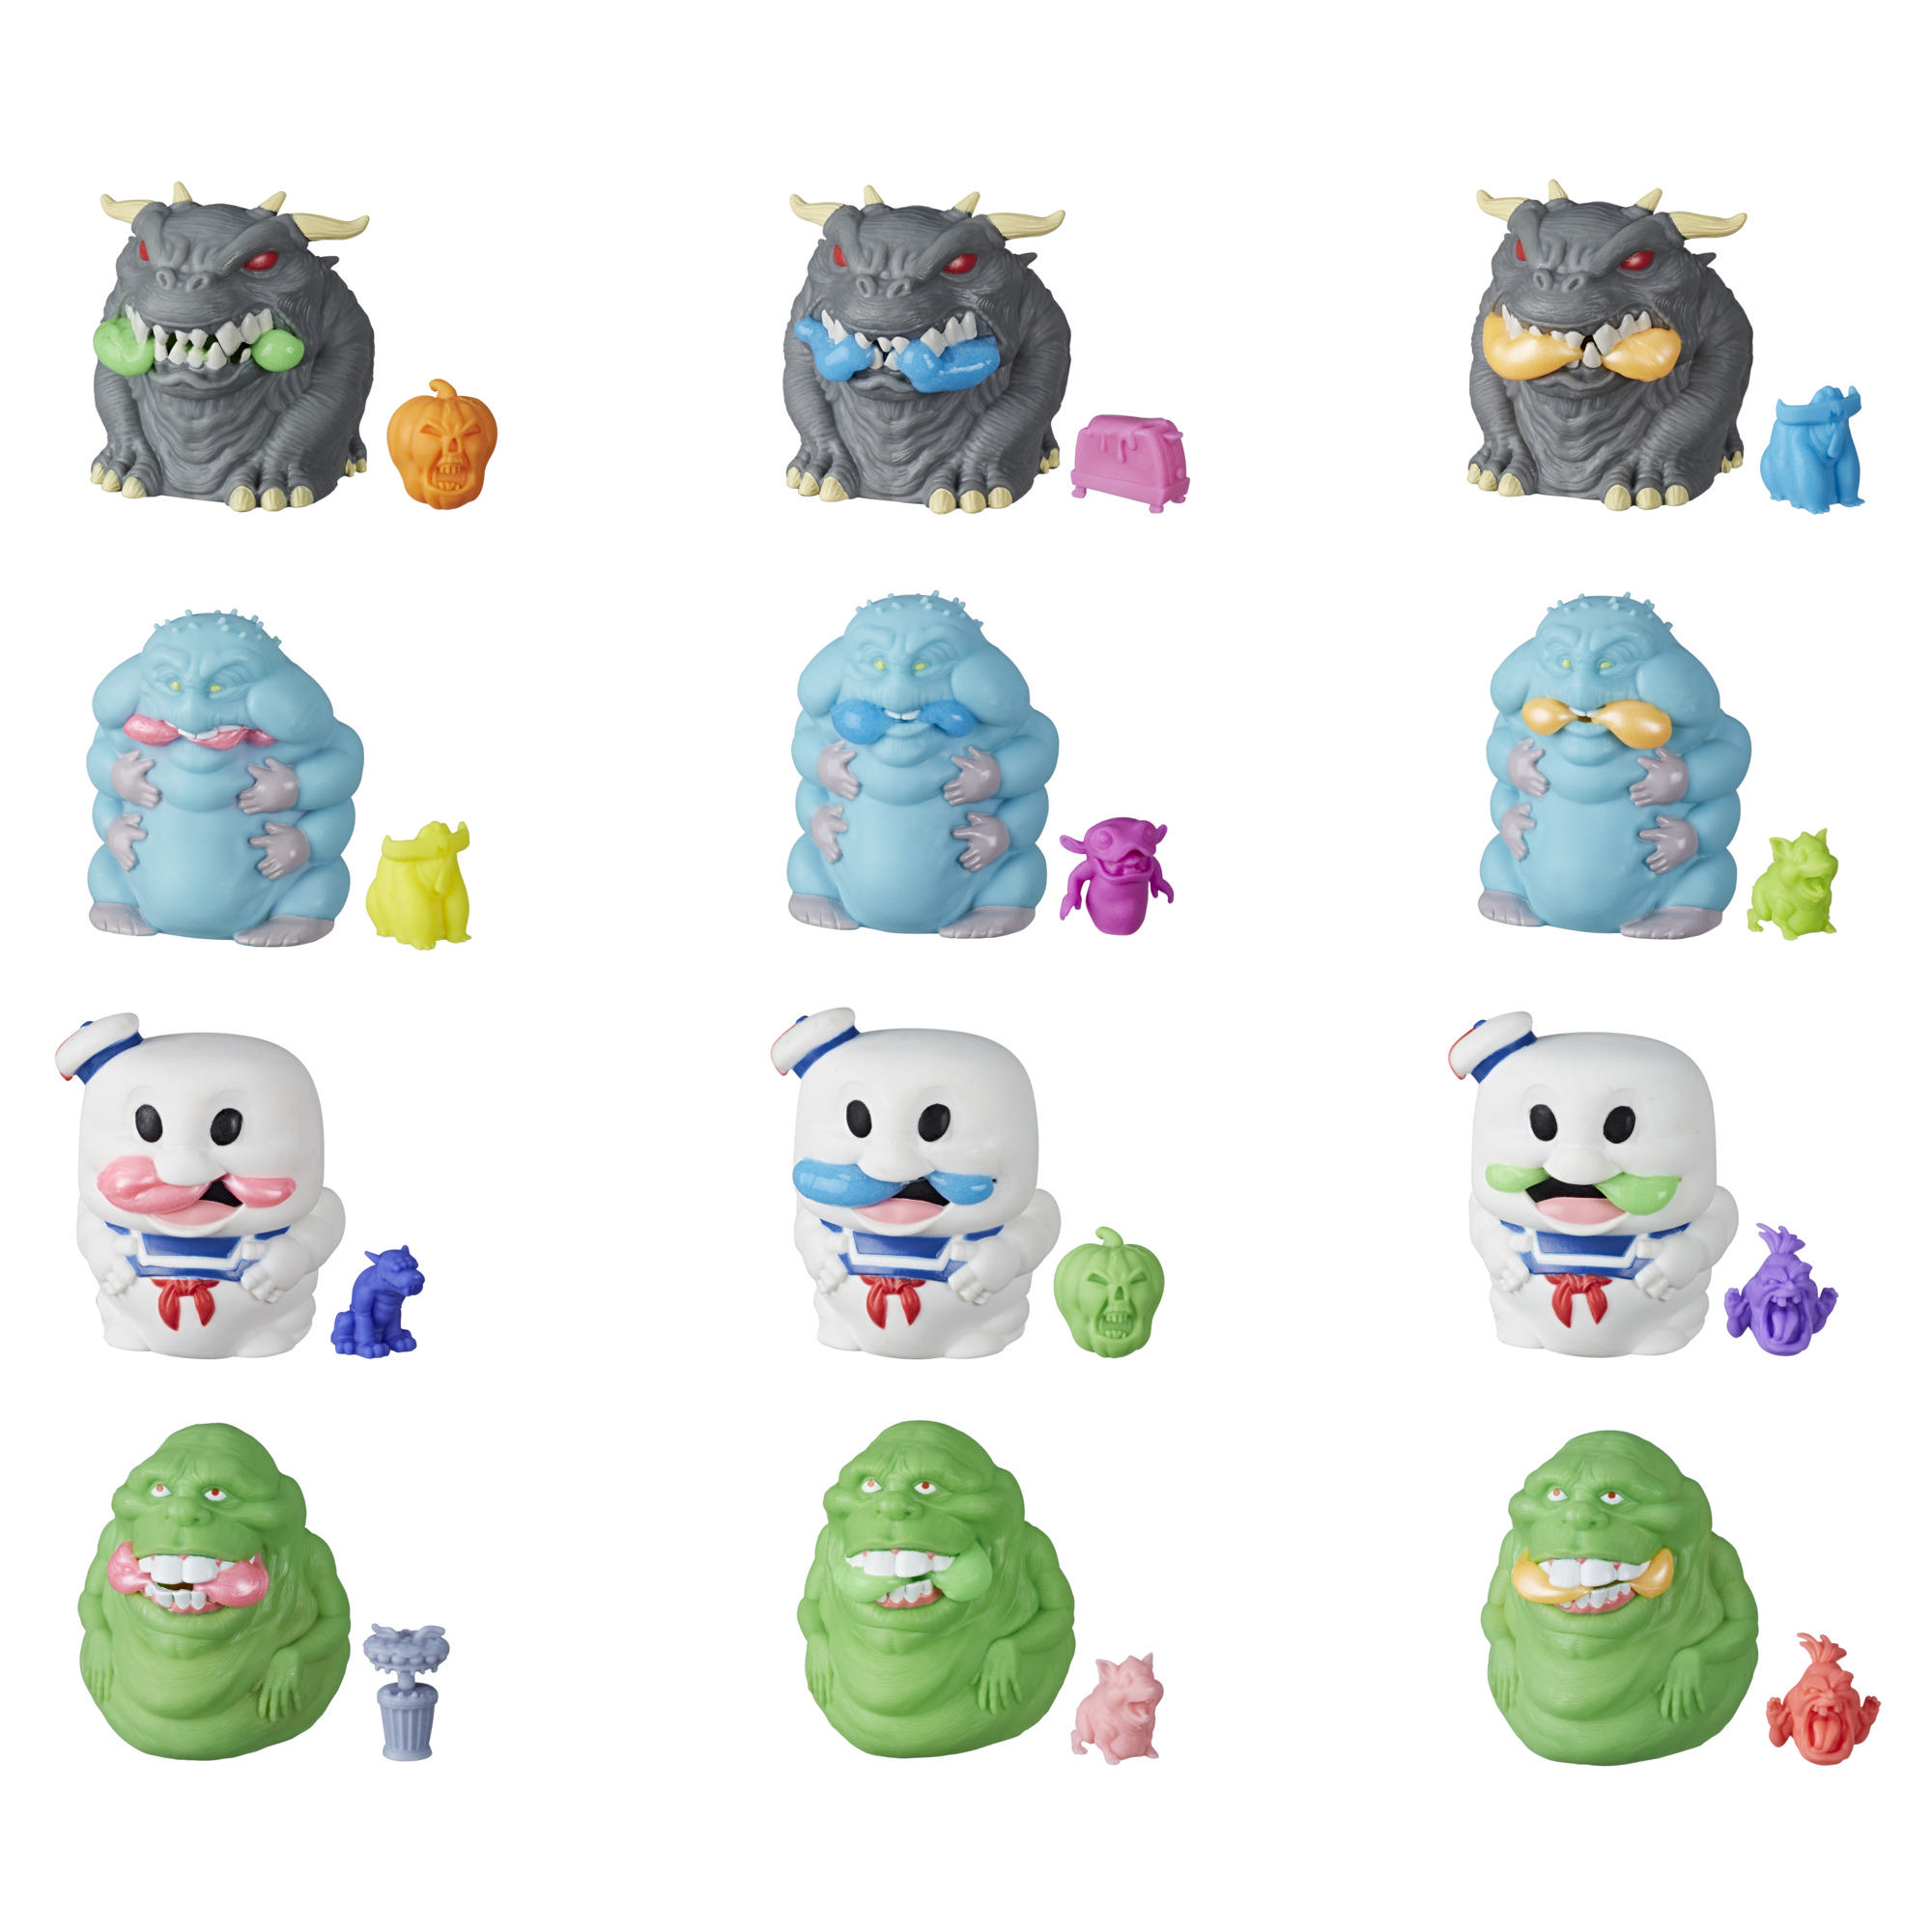 Ghostbusters Ecto-Plasm Ghost Gushers Squeezable Figures with Ecto-Plasm and Mystery Mini Figures Inside